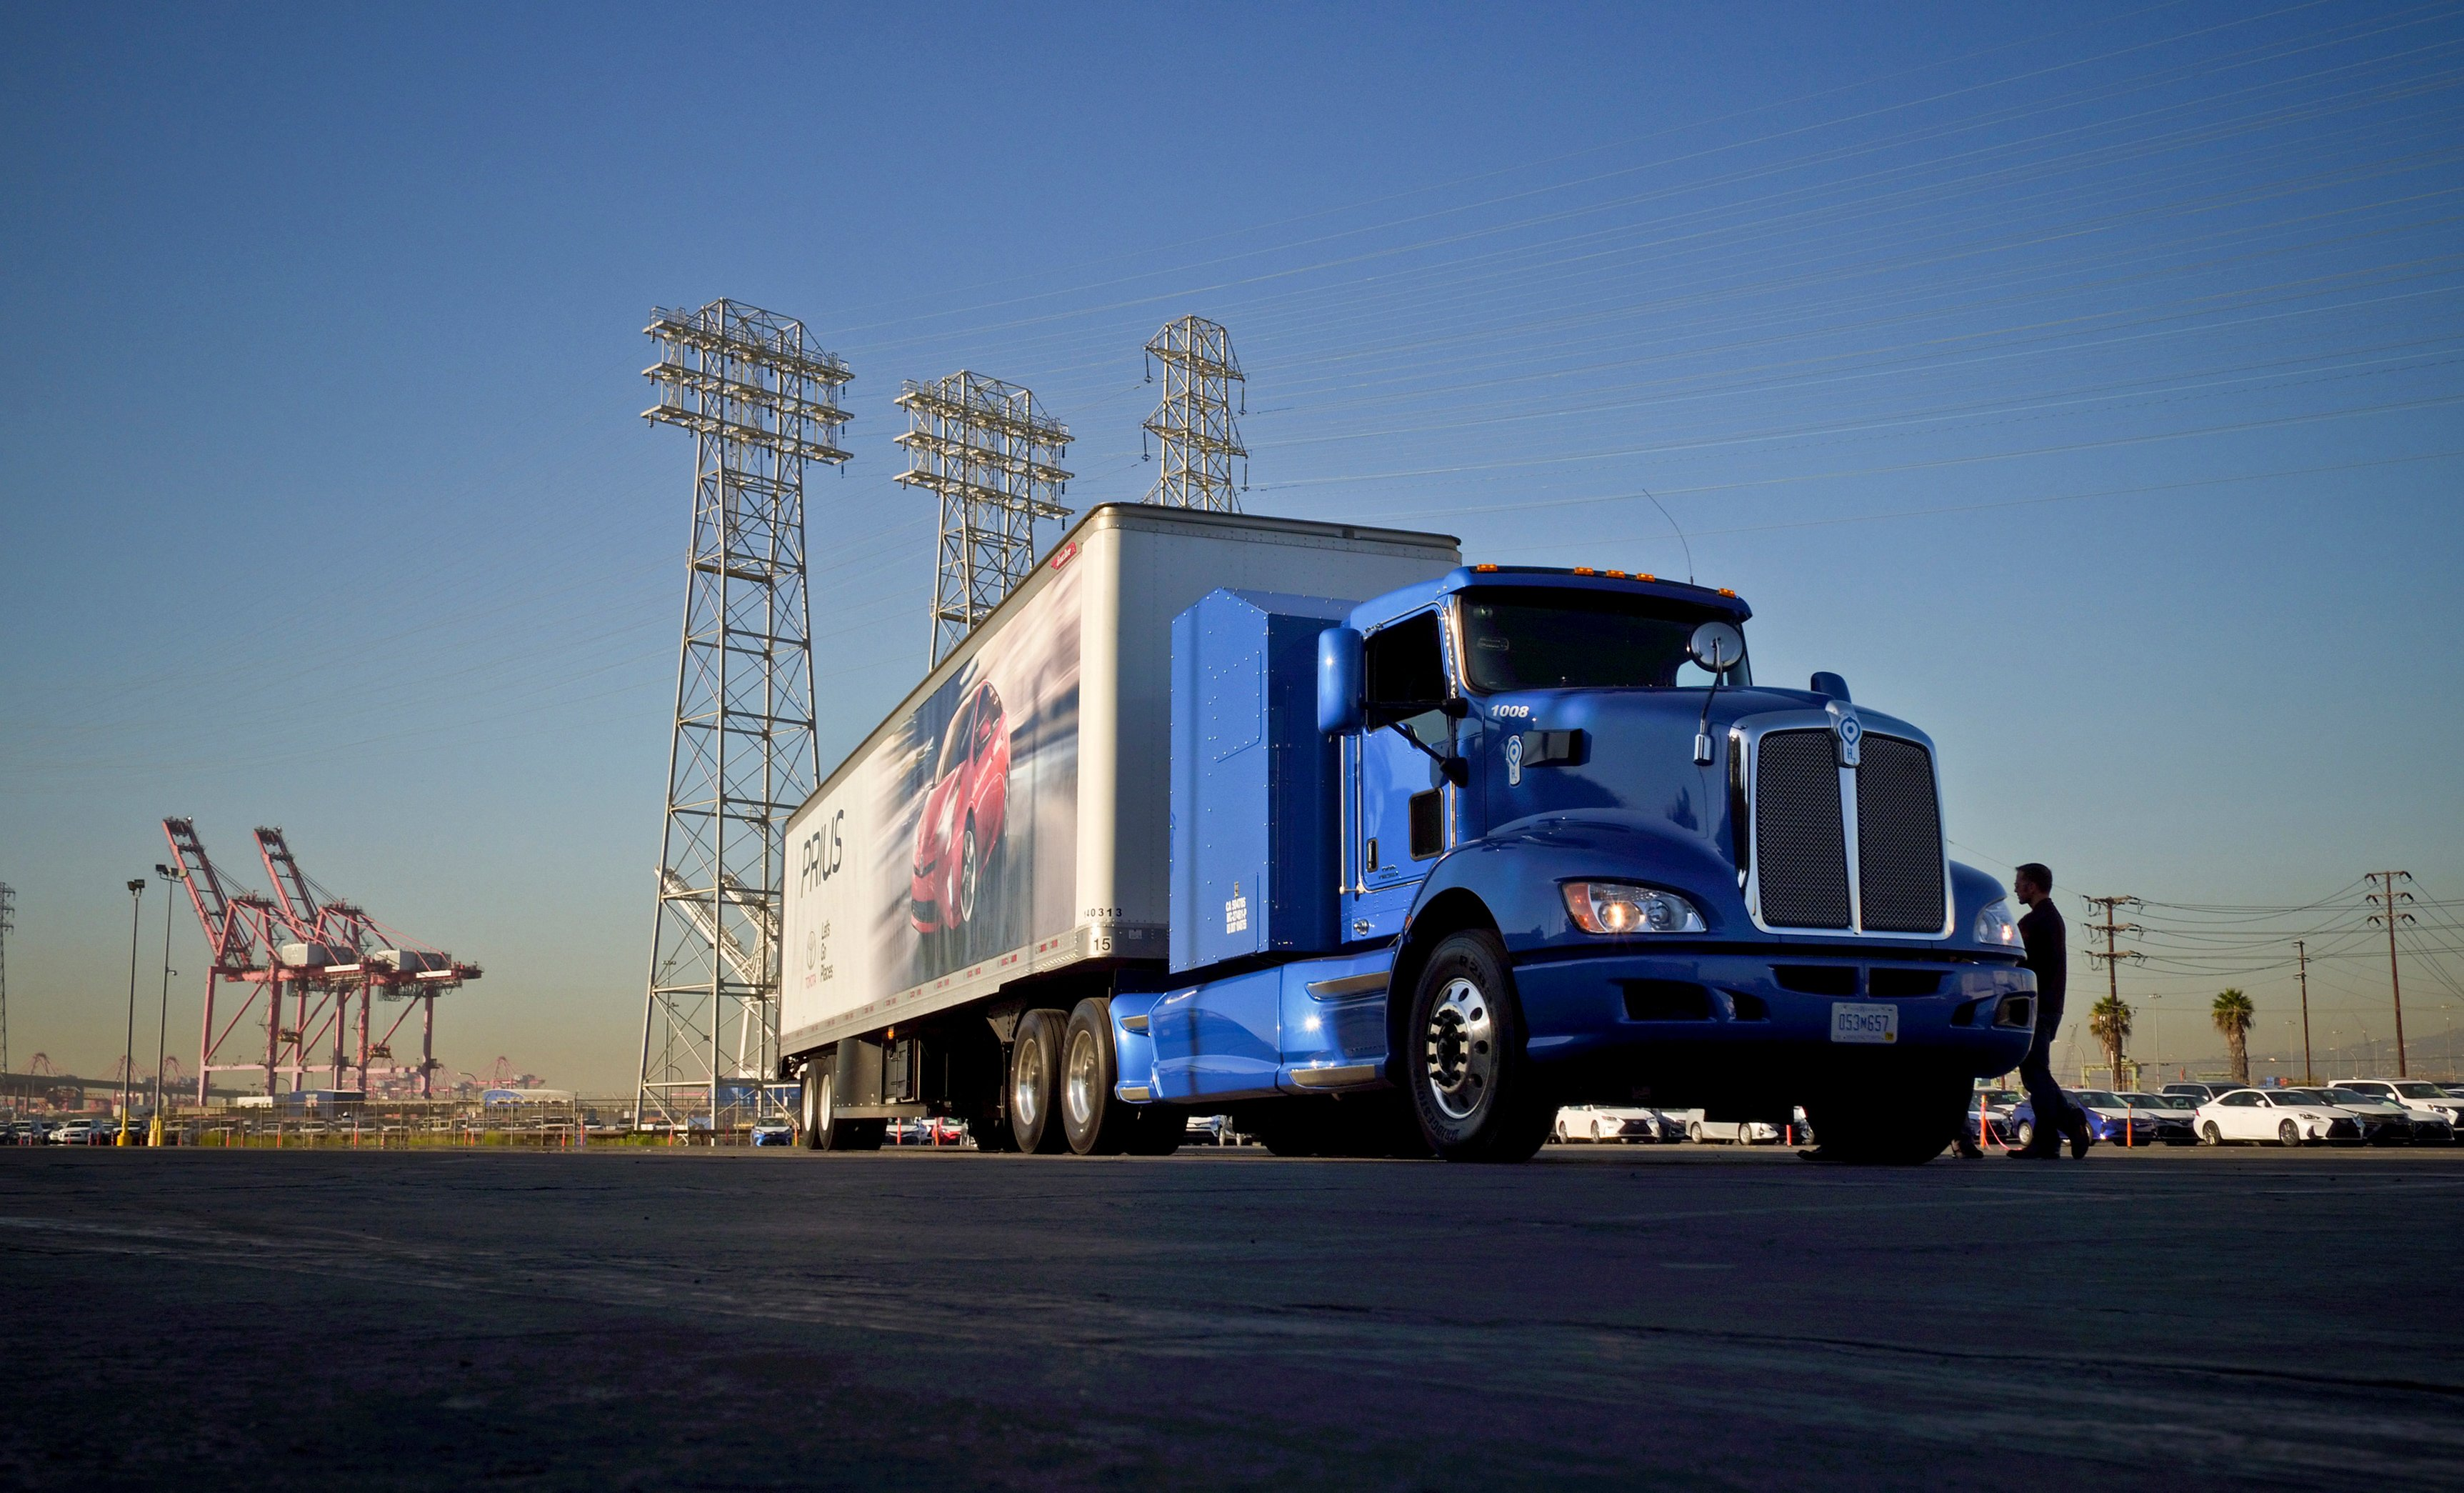 Toyota's Hydrogen Fuel Cell Truck to Run Routes in California